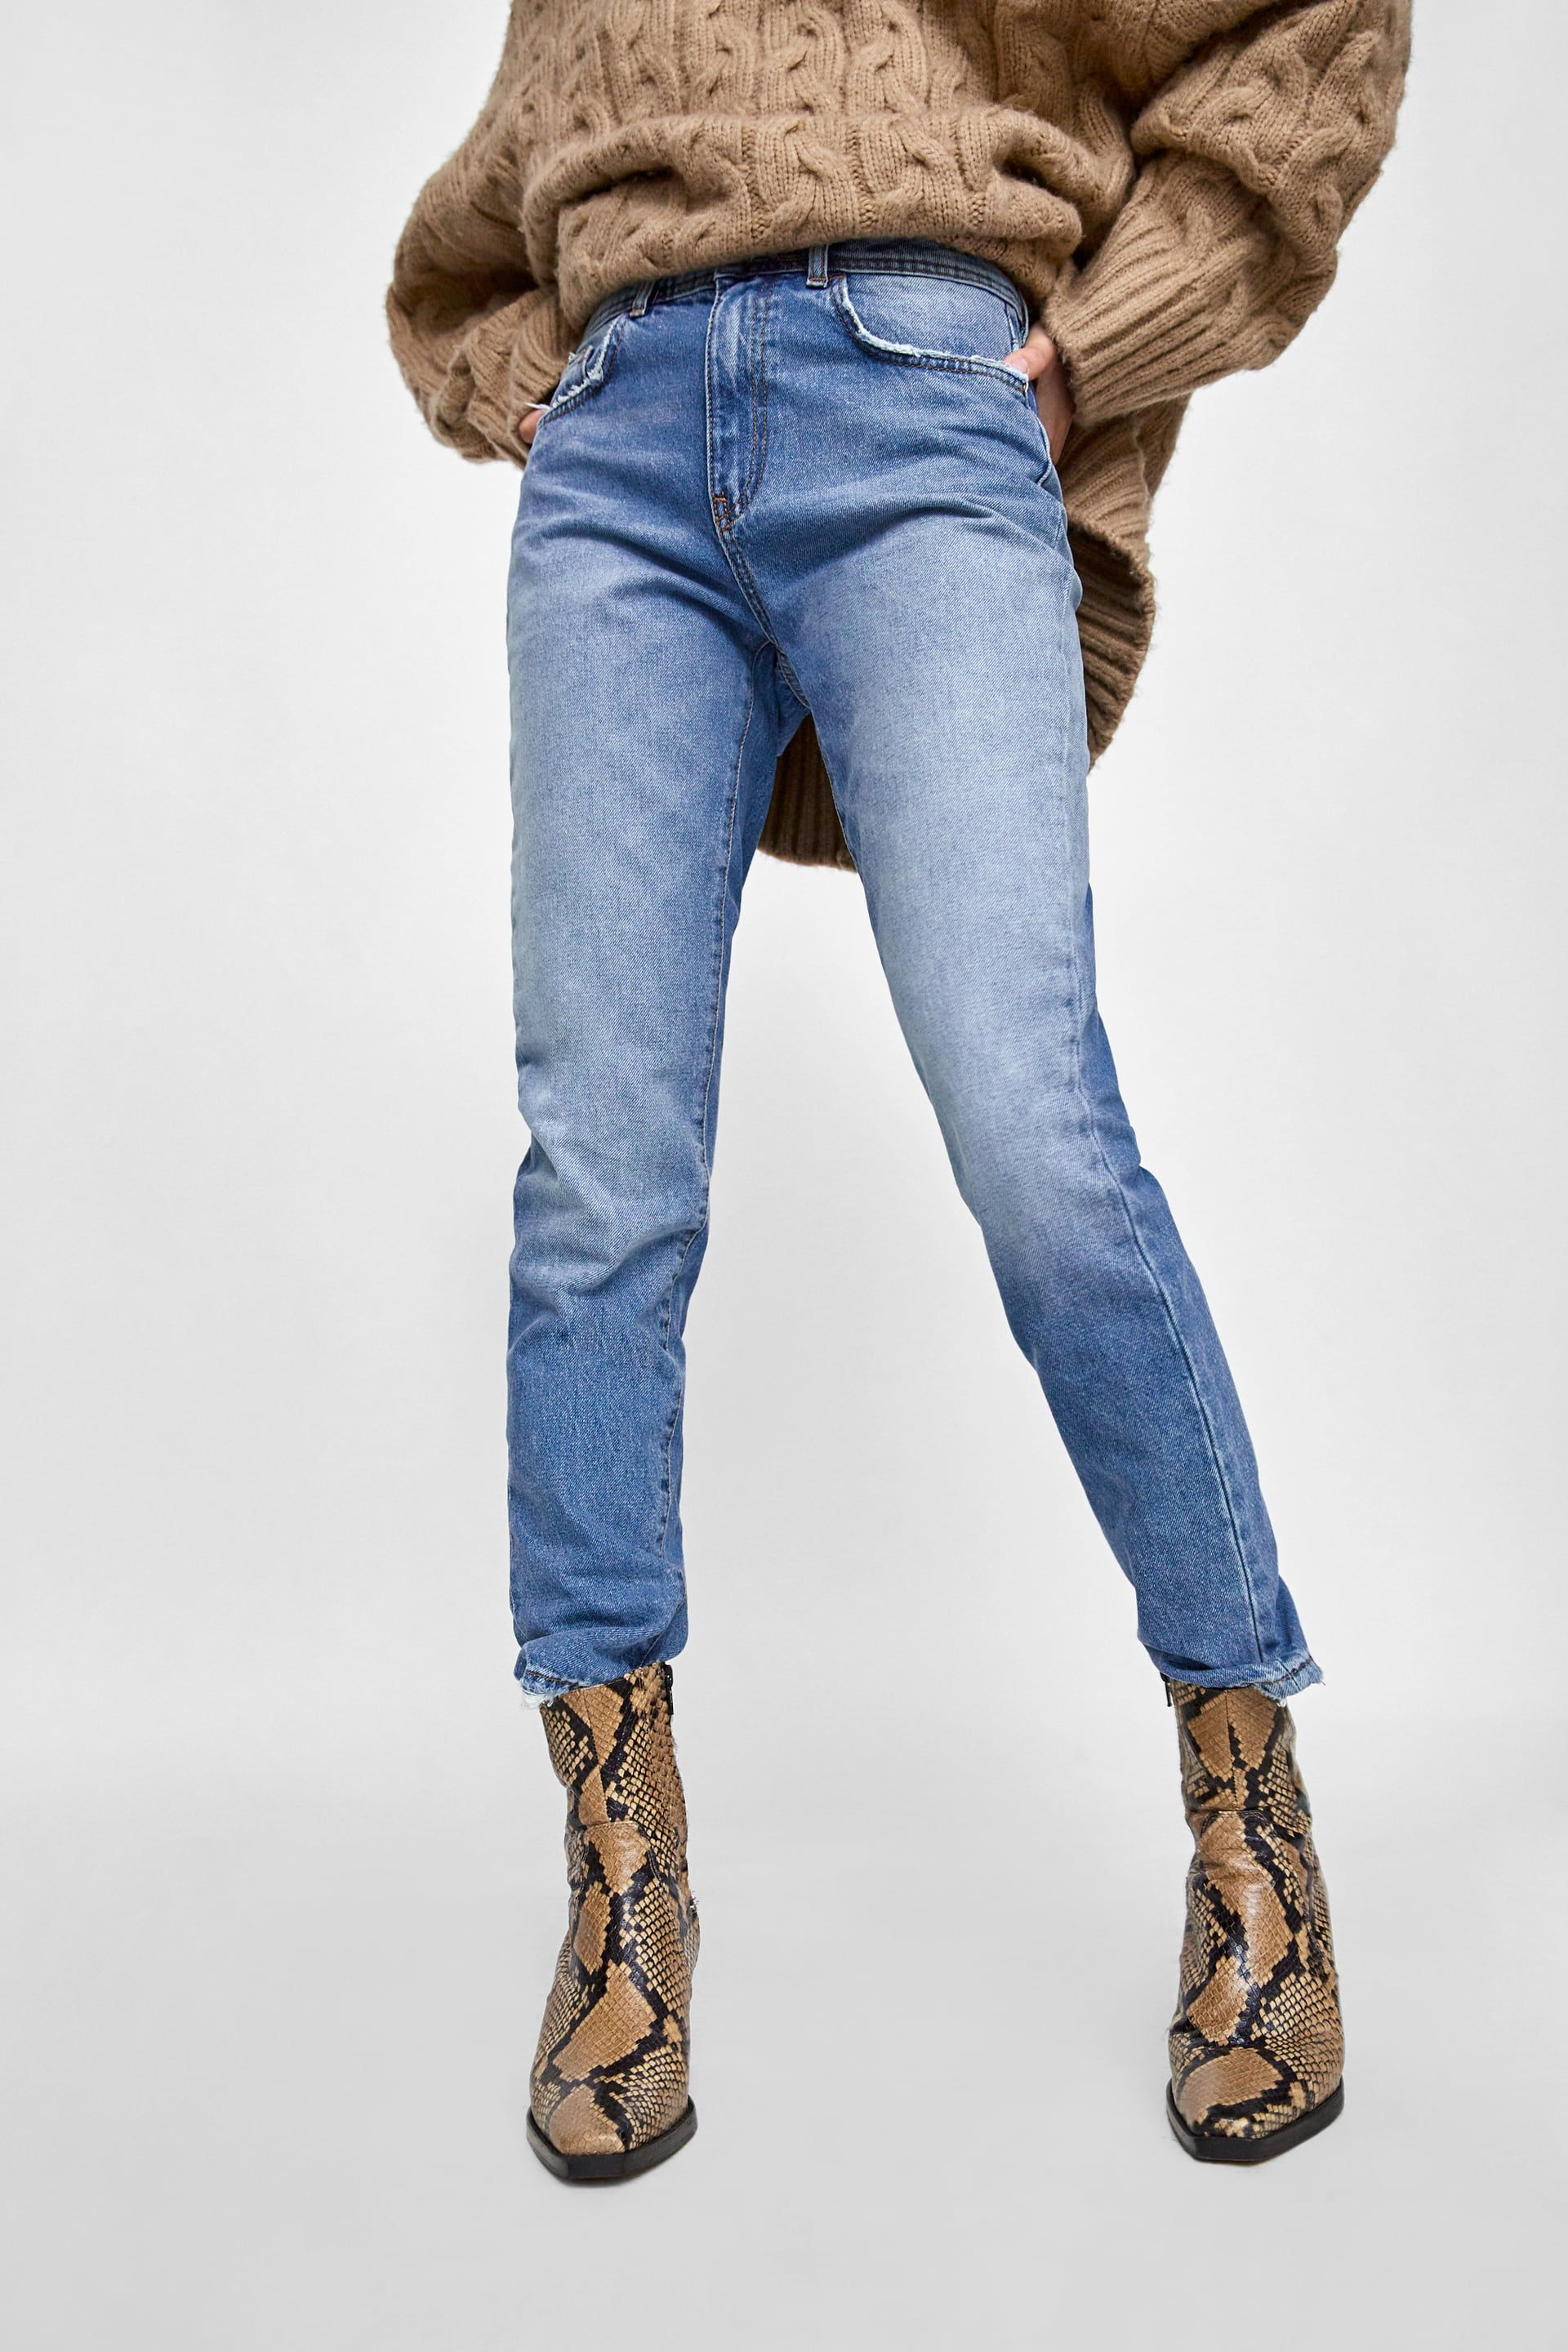 1165316a4f6c Mom fit jeans z1975 | WANT | Jeans, Jeans fit, Mom jeans